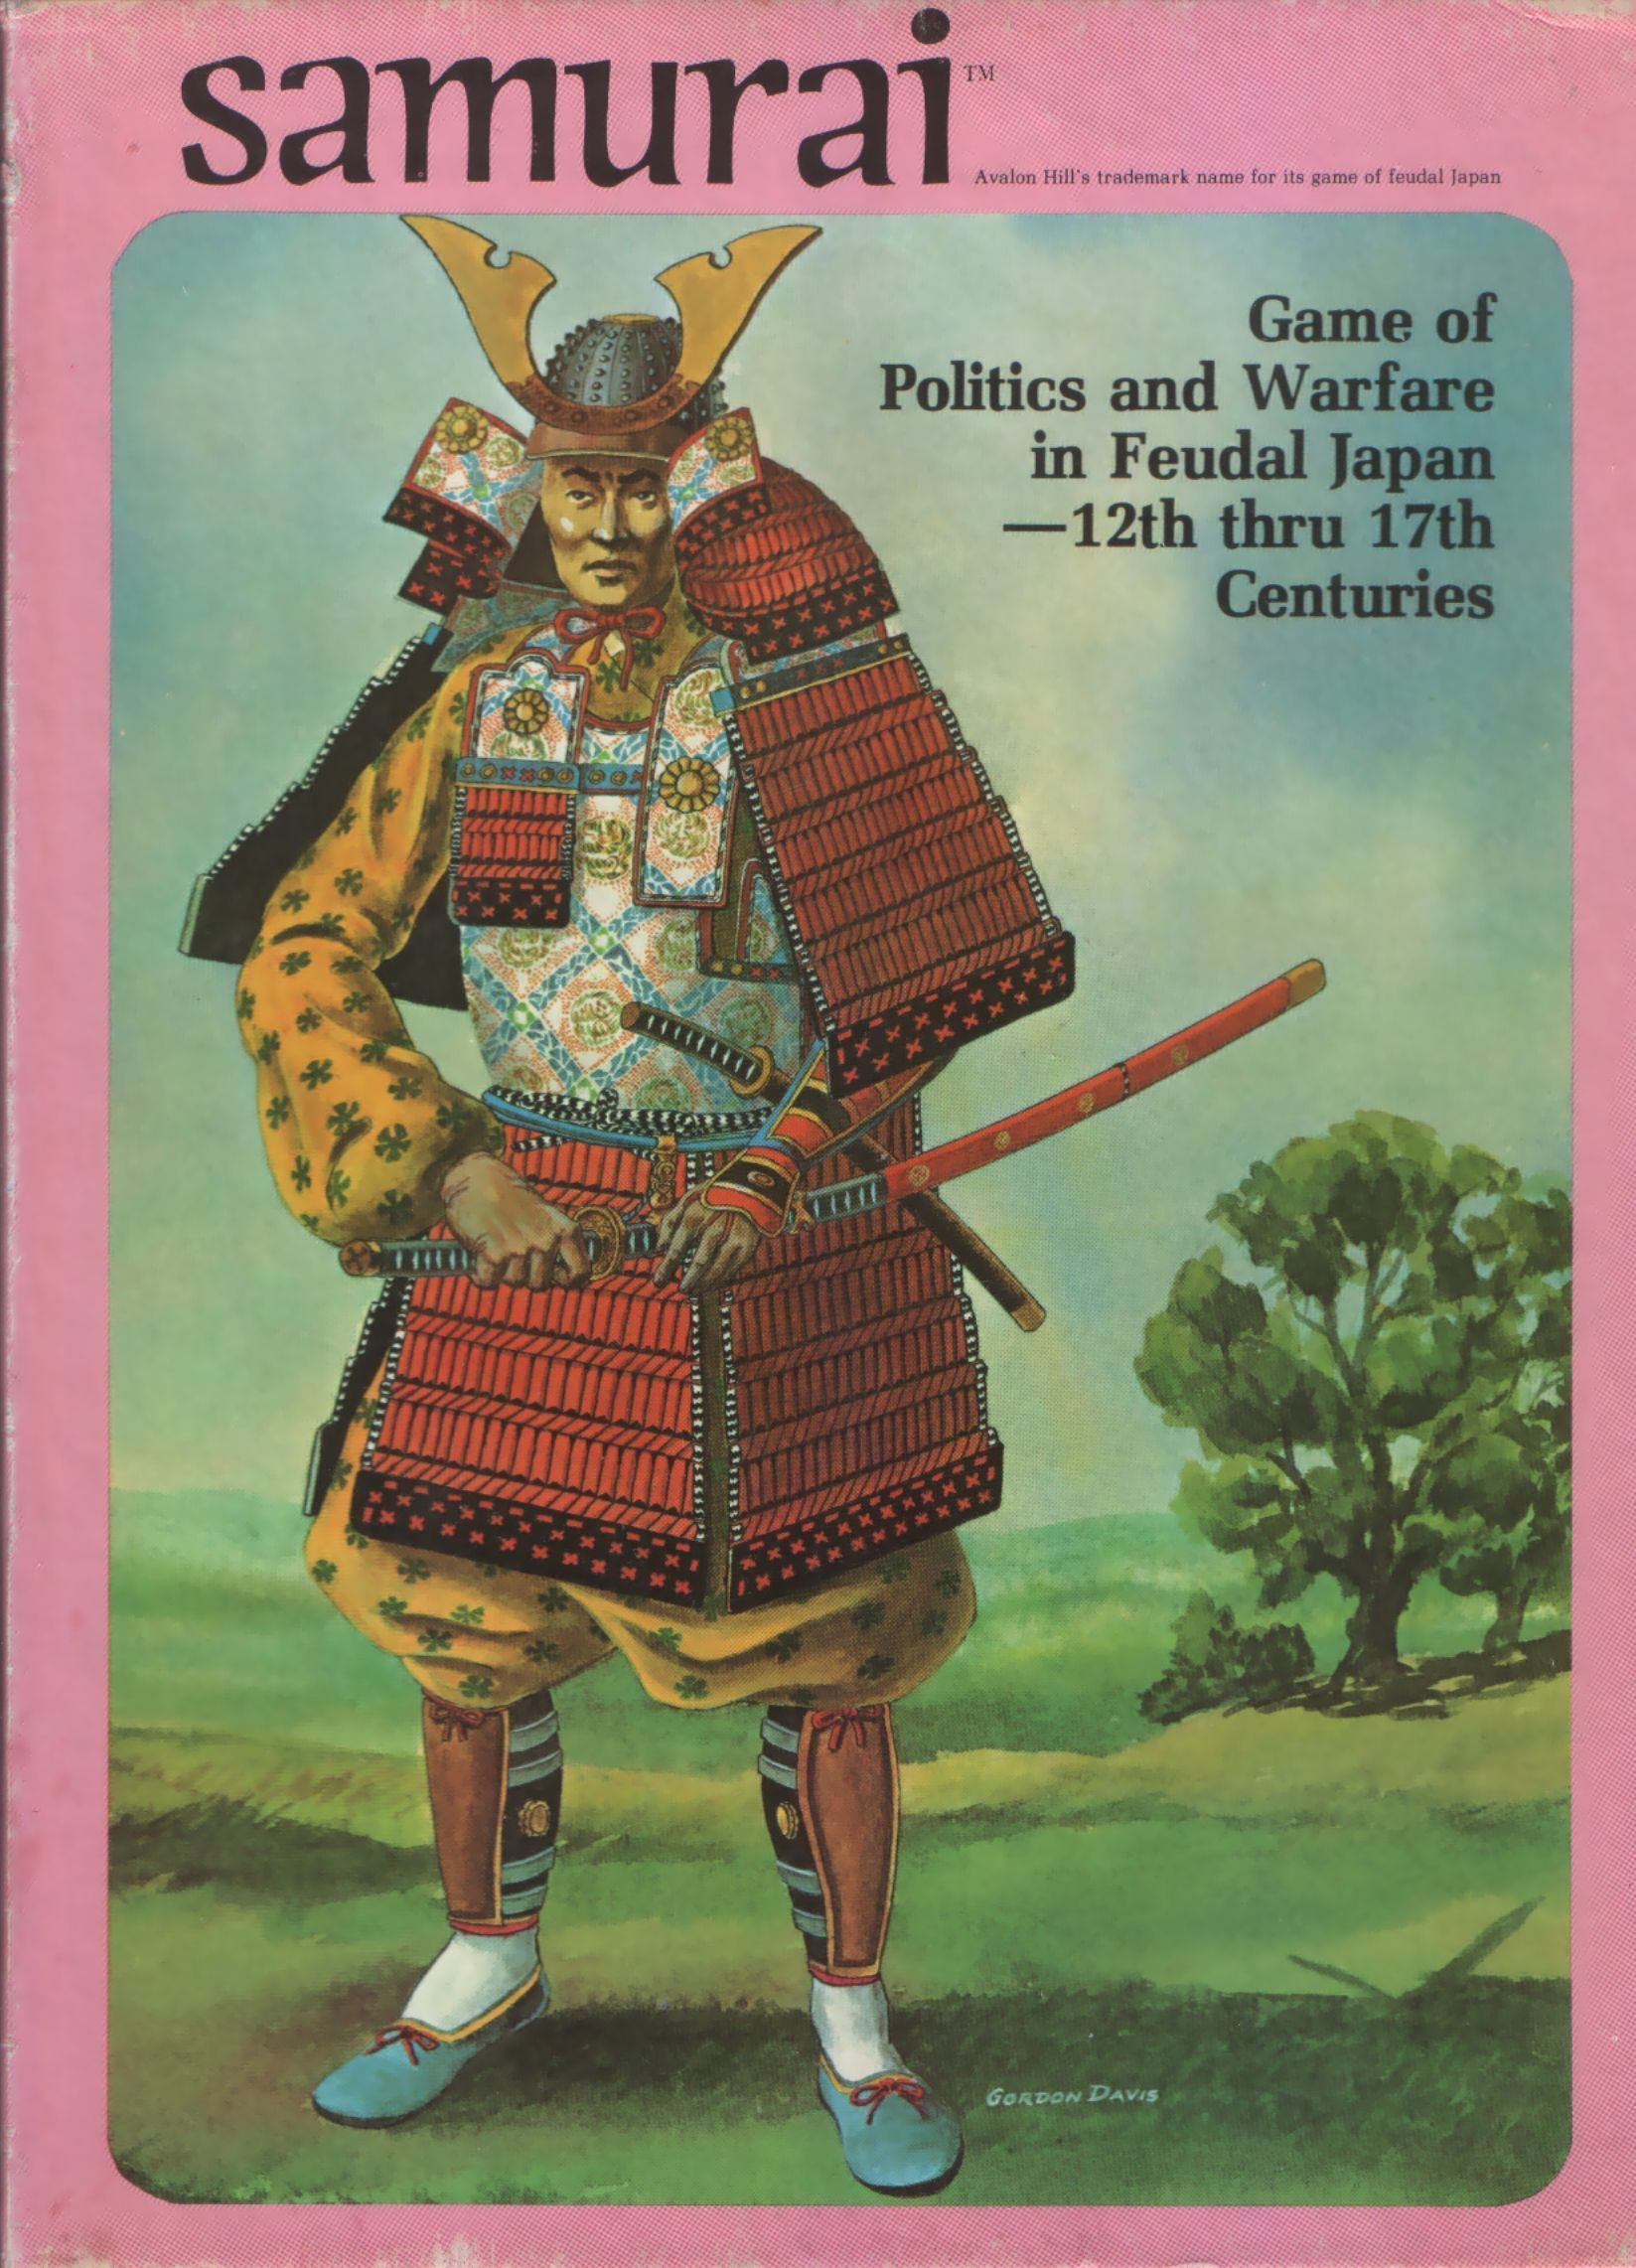 Samurai: Game of Politics and Warfare in Feudal Japan – 12th thru 17th Centuries